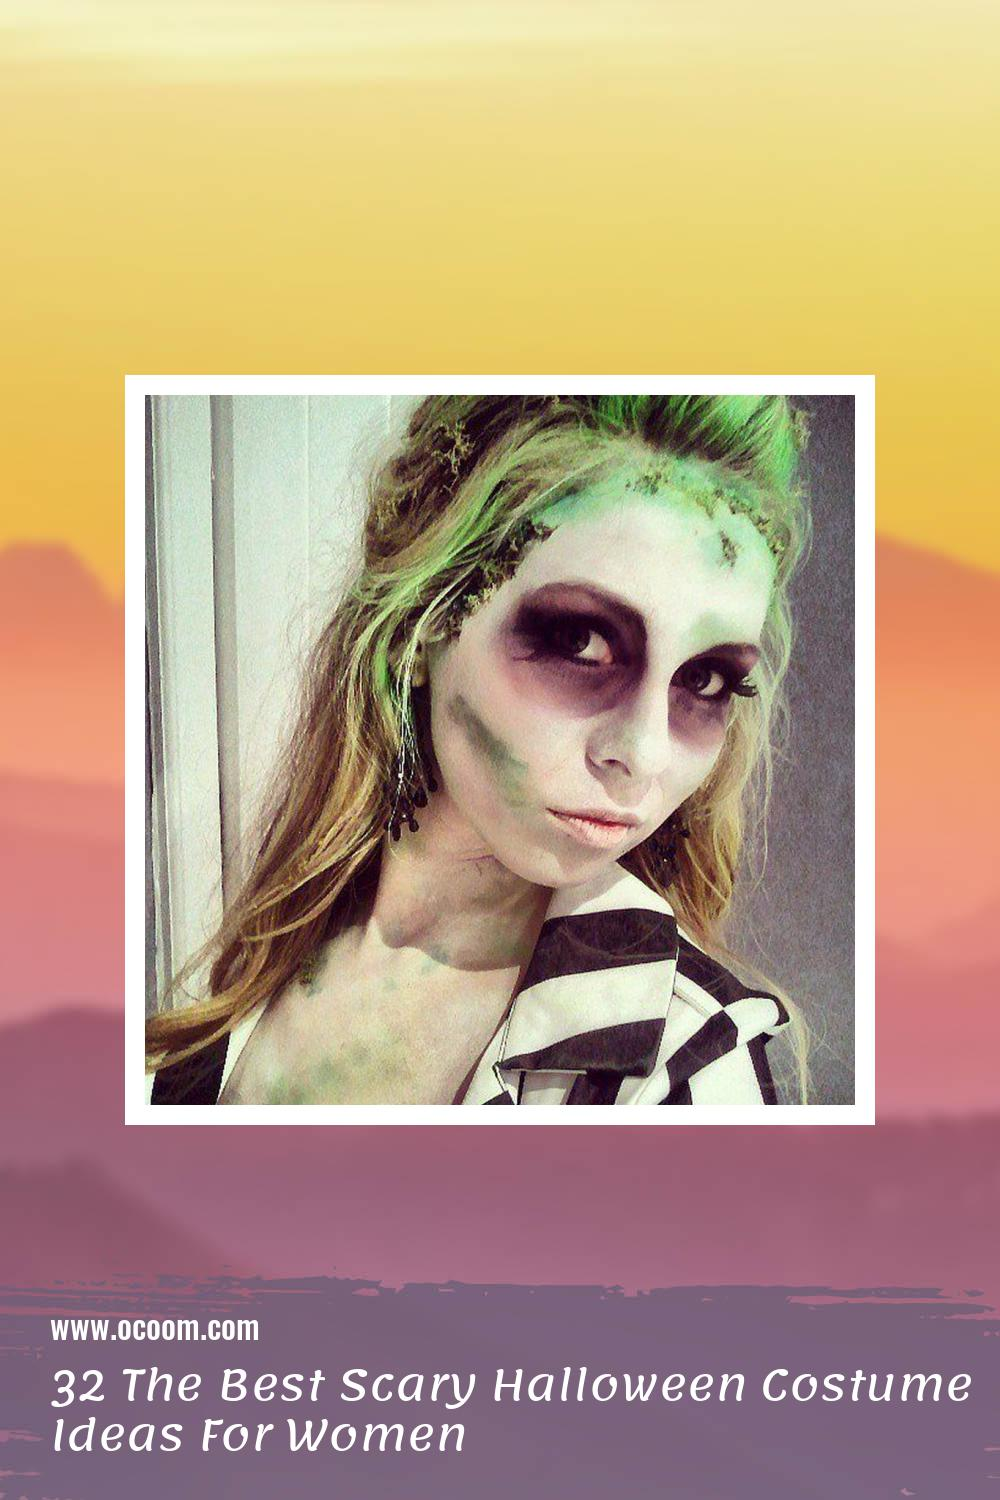 32 The Best Scary Halloween Costume Ideas For Women 6